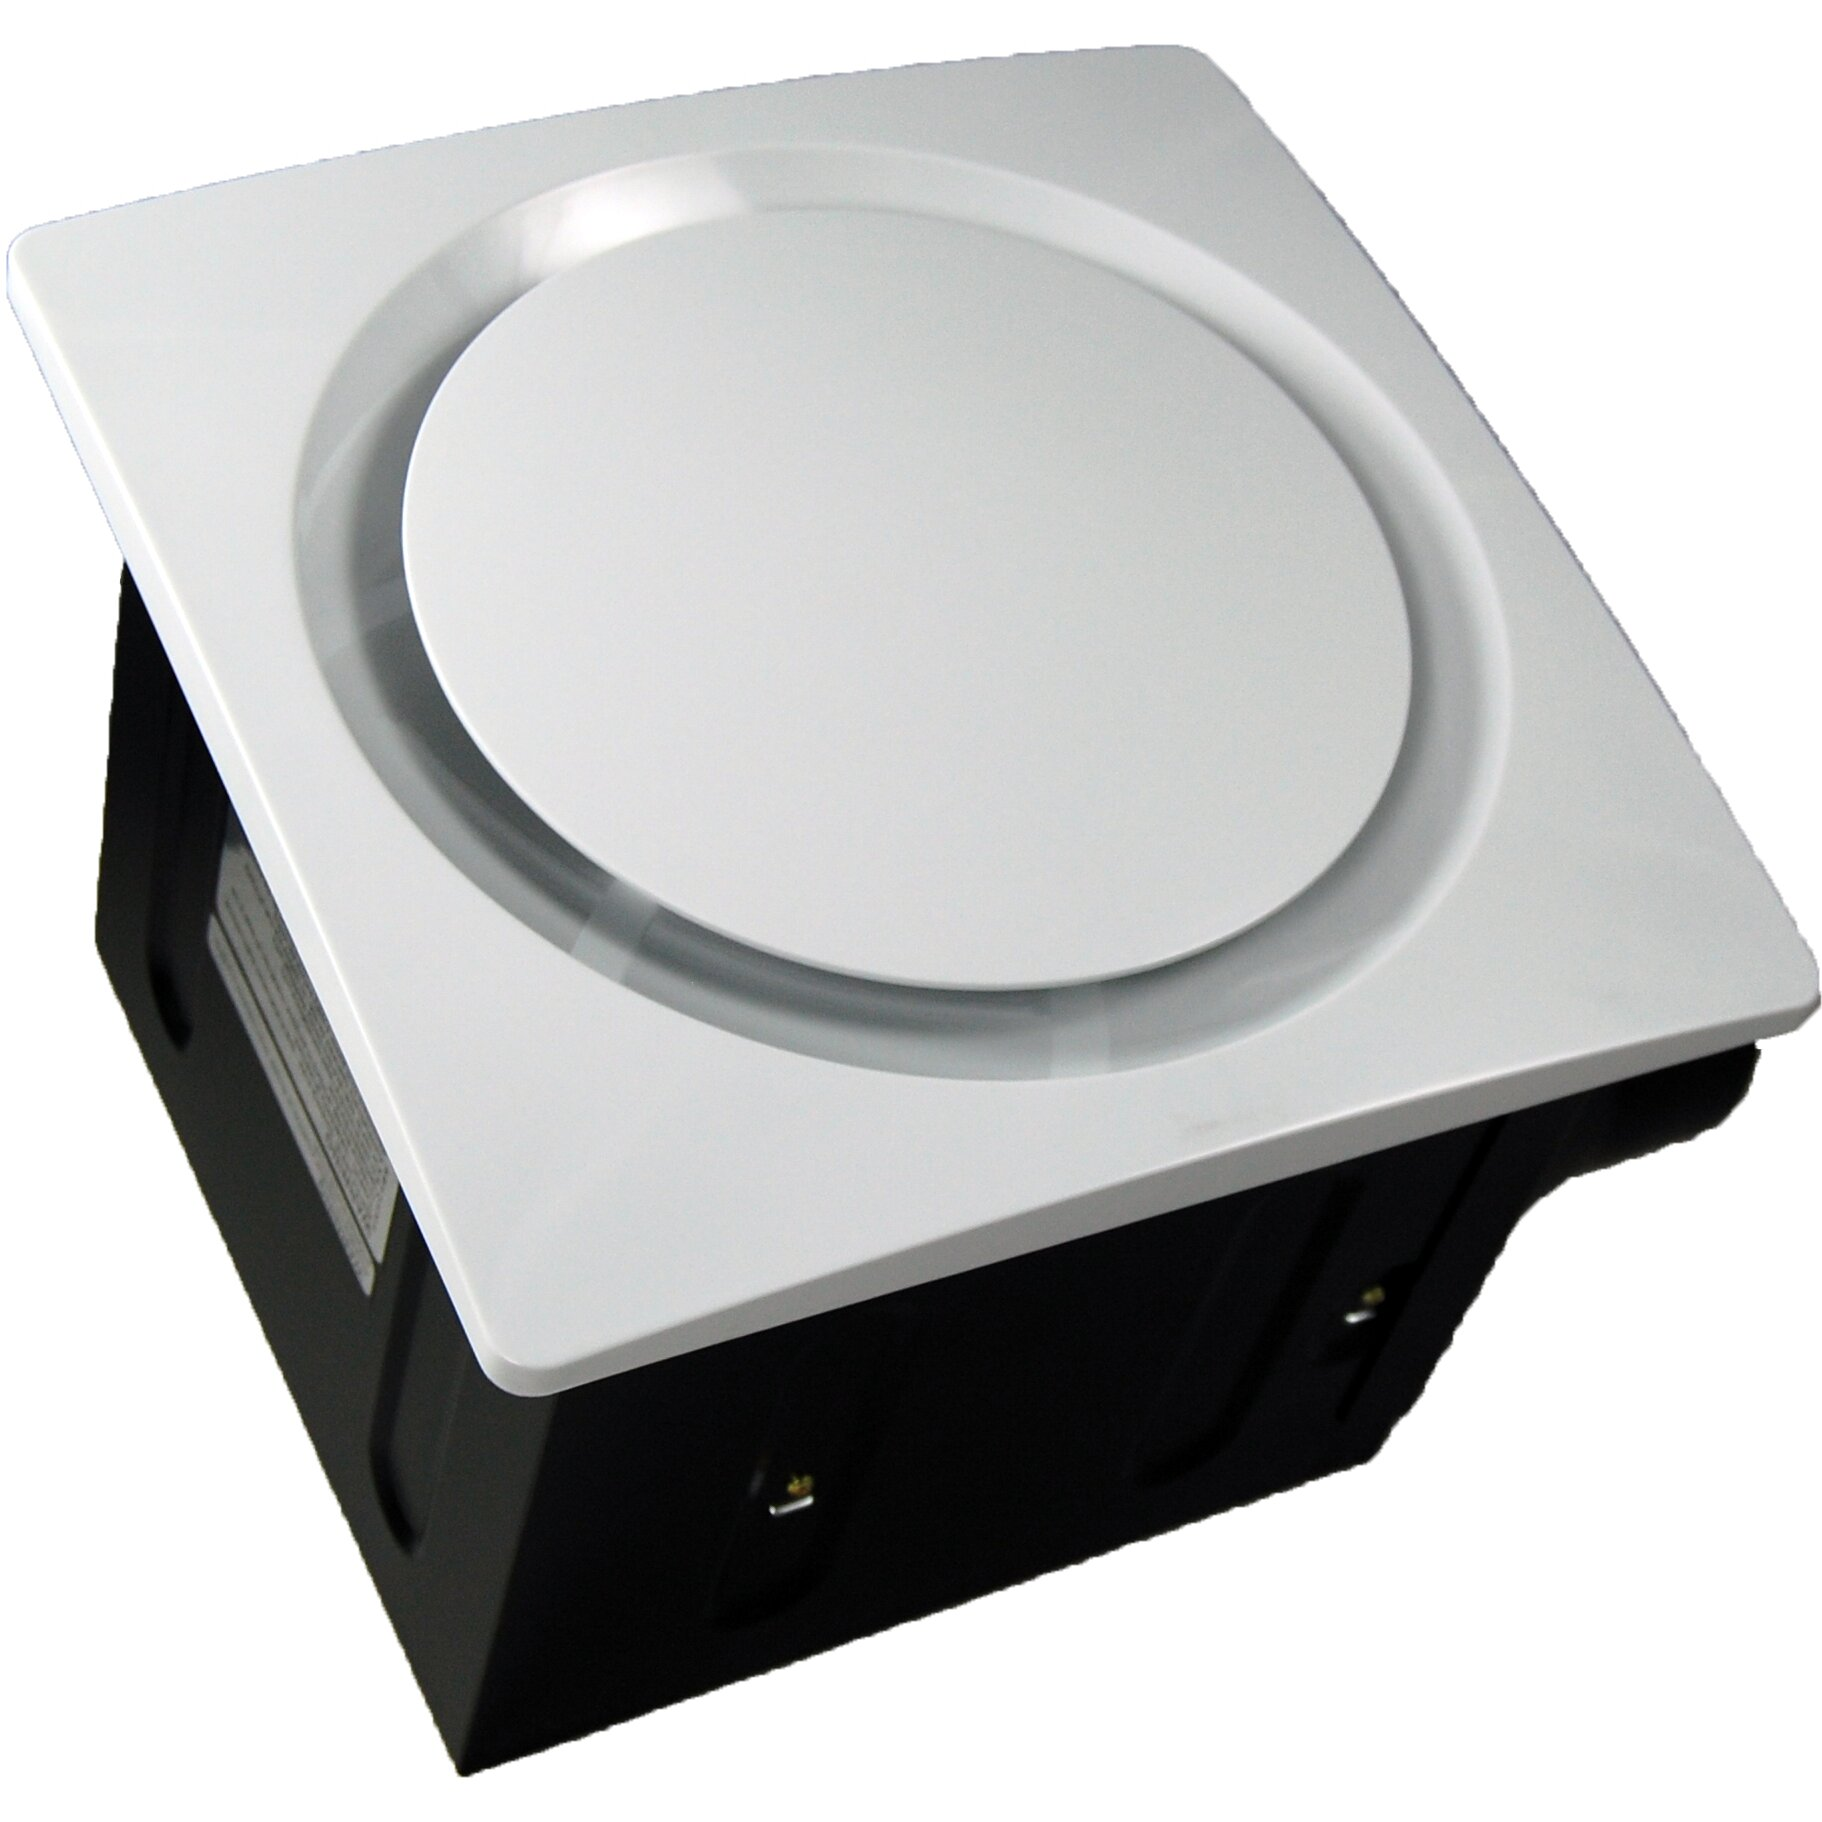 Aero Pure Super Quiet 110 CFM Bathroom Ventilation Fan & Reviews